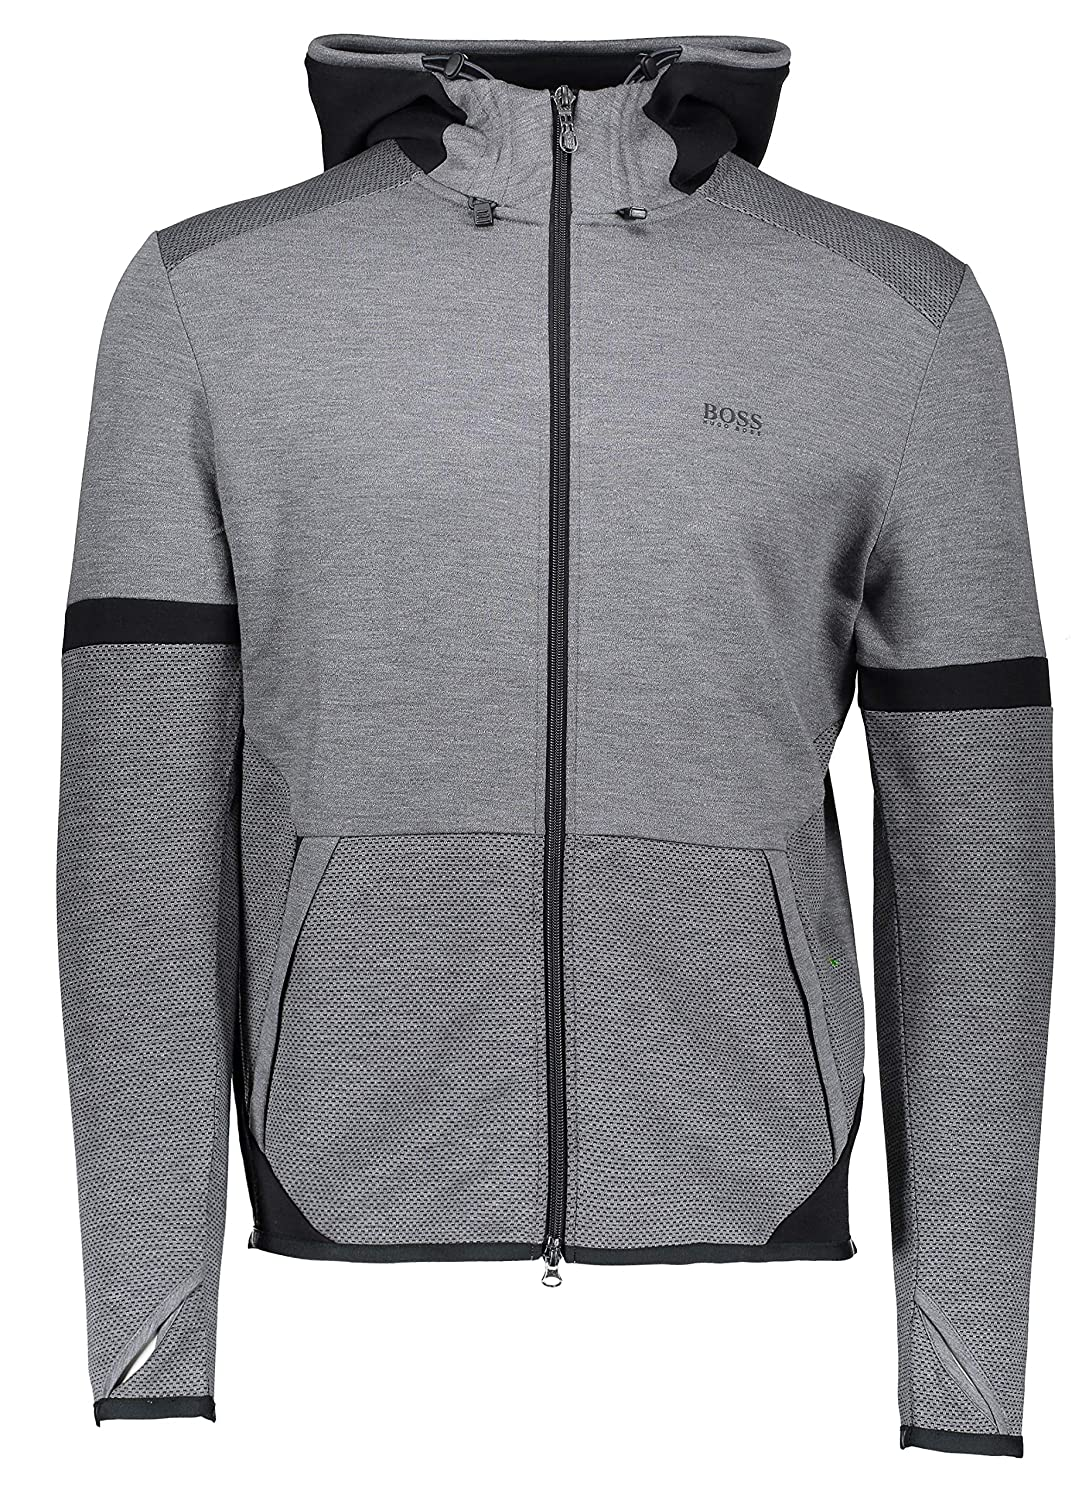 Hugo Boss Mens Hooded Sweatshirt Selnio Grey 50390019 031